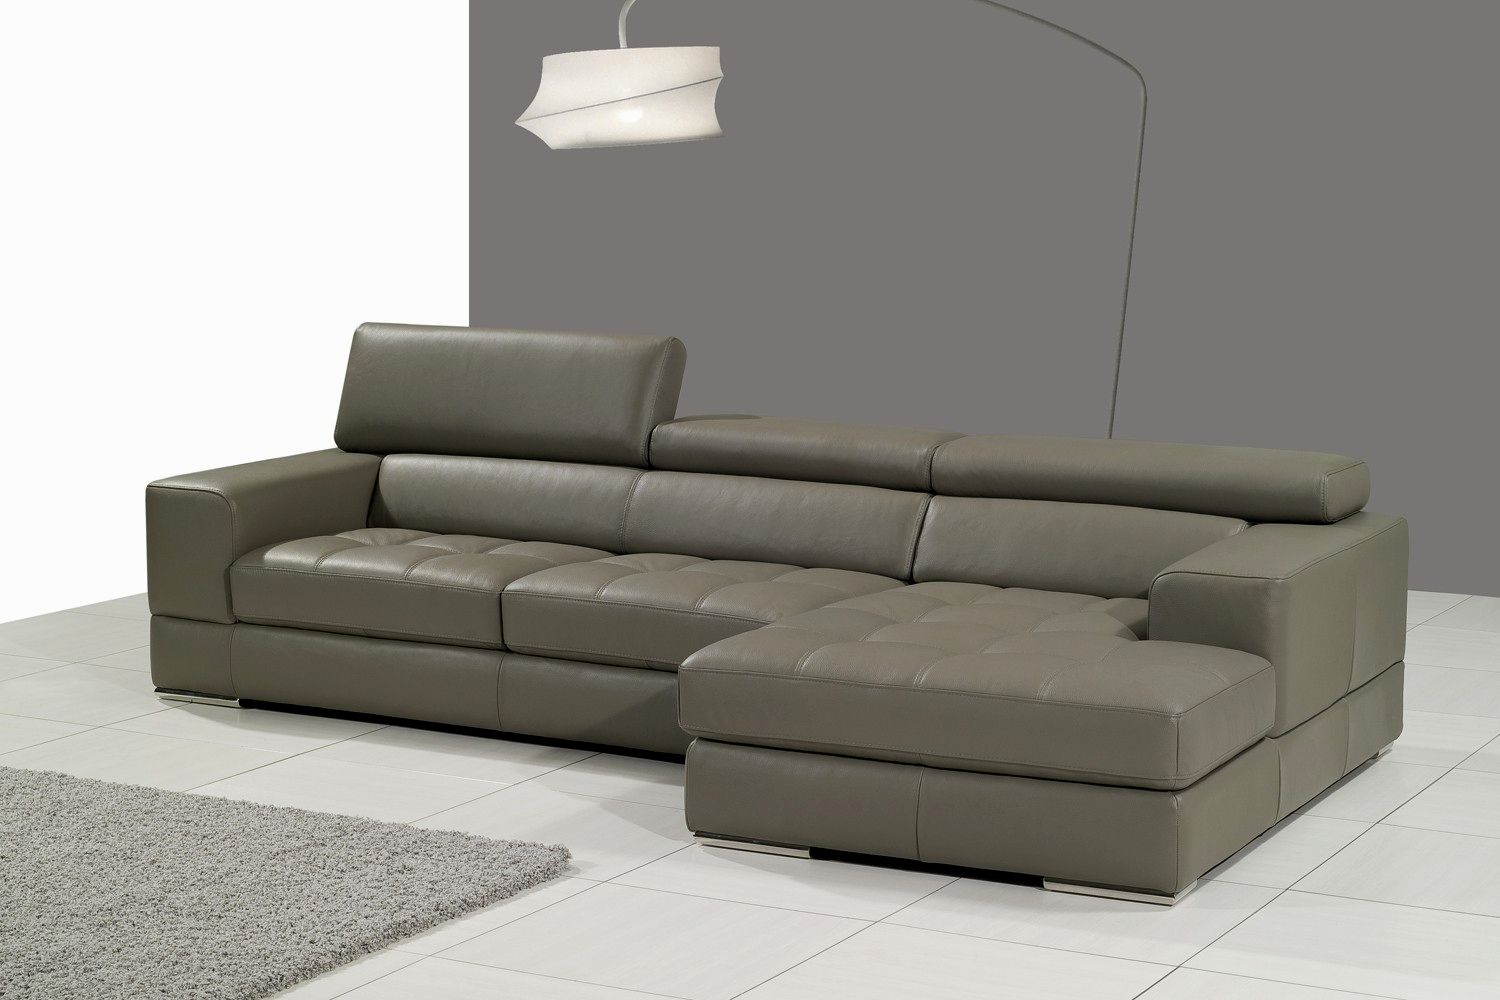 fantastic sectional sofa with recliner decoration-Excellent Sectional sofa with Recliner Picture